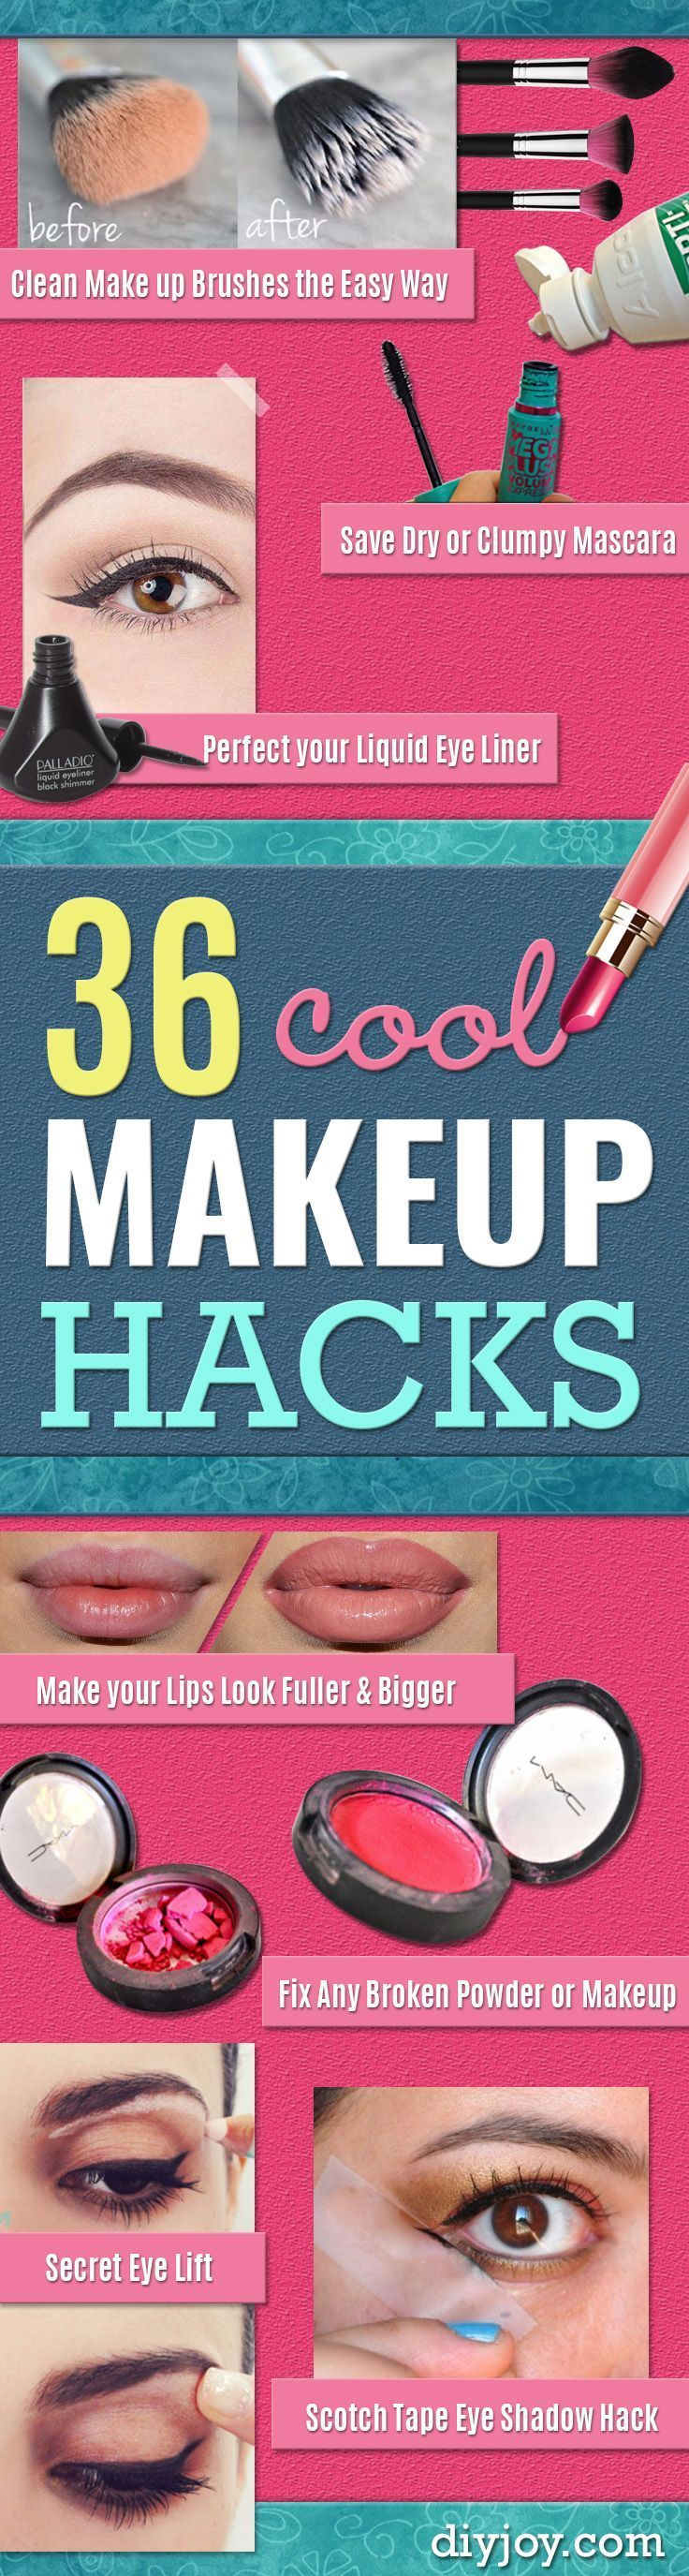 Cool DIY Makeup Hacks for Quick and Easy Beauty Ideas - How To Fix Broken Makeup, Tips and Tricks for Mascara and Eye Liner, Lipstick and Foundation Tutorials - Fast Do It Yourself Beauty Projects for Women diyjoy.com/...